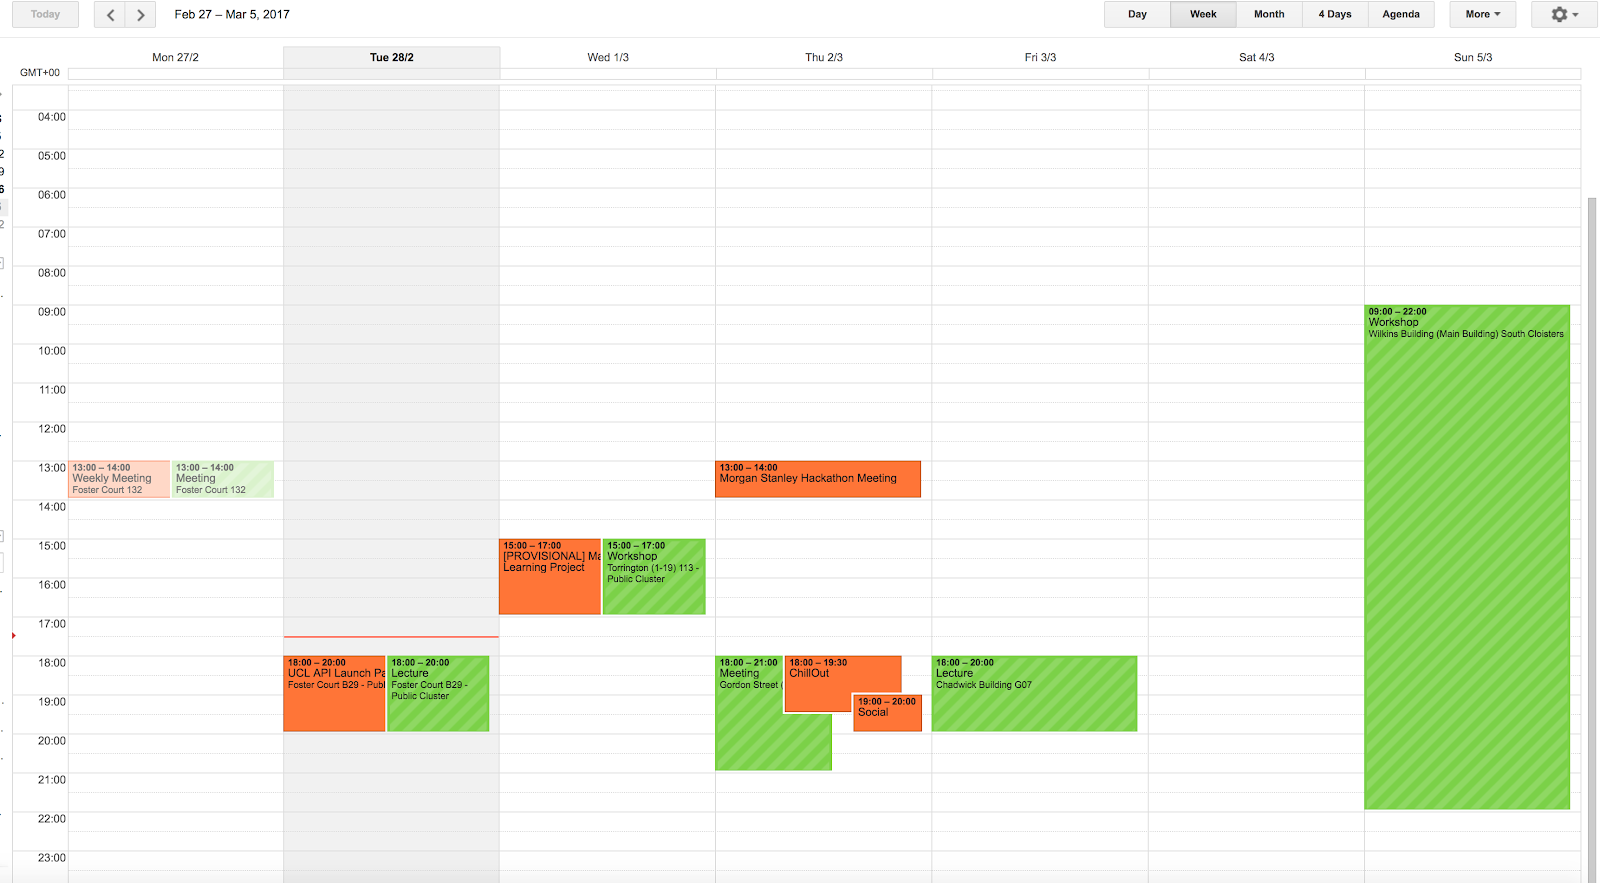 UCL Room bookings in Google Calendar (green)